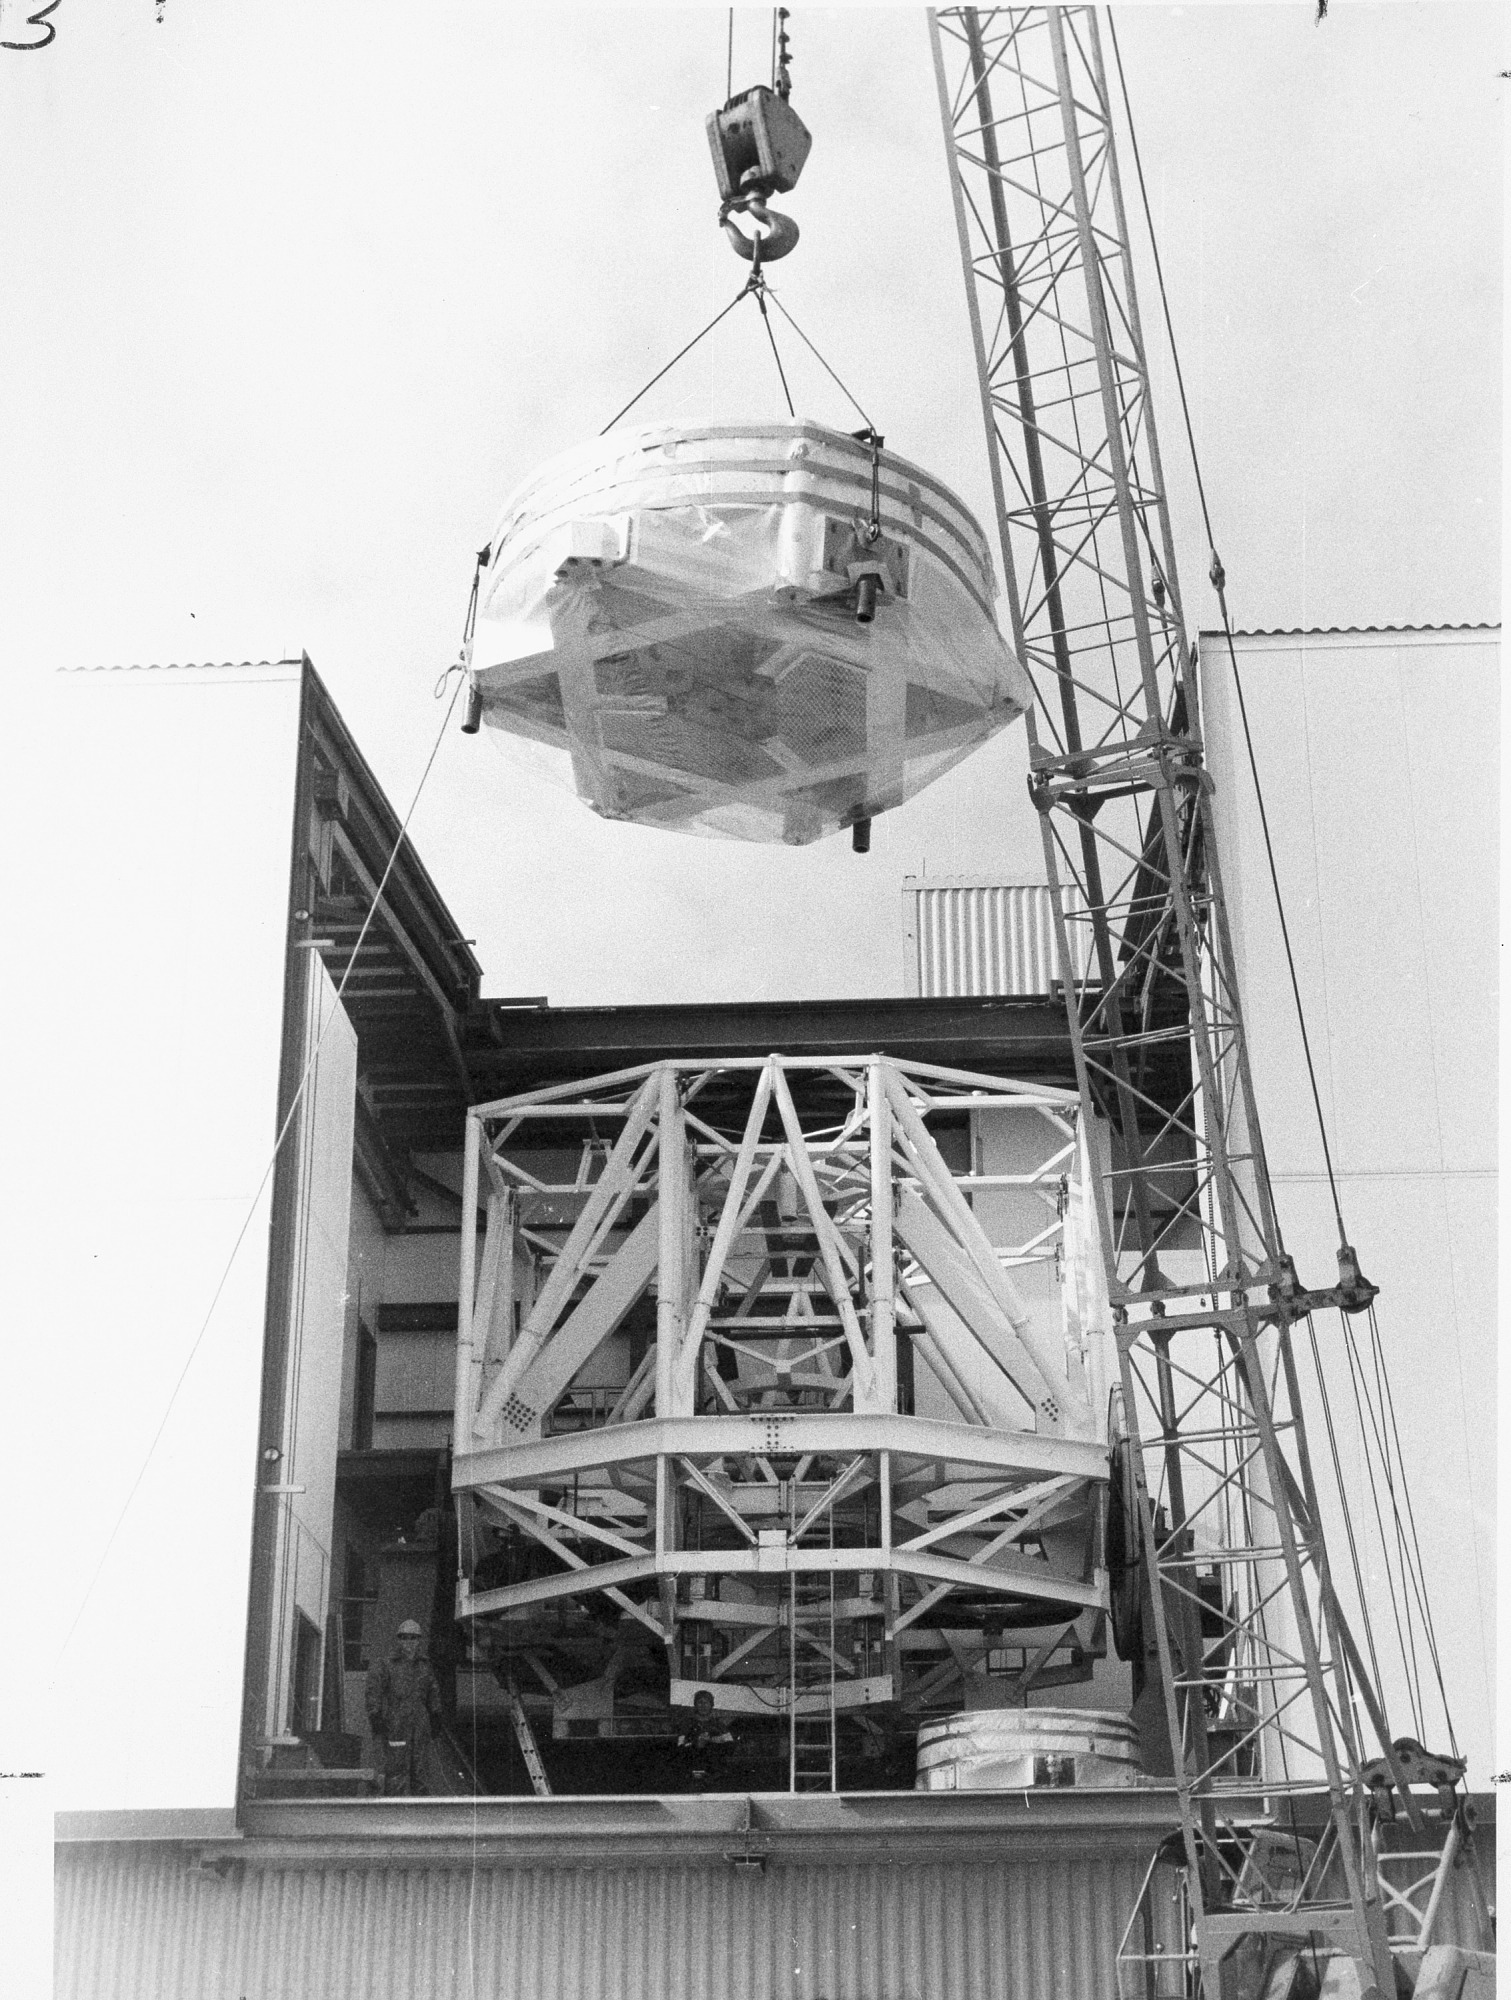 Installation of Multiple Mirror Telescope